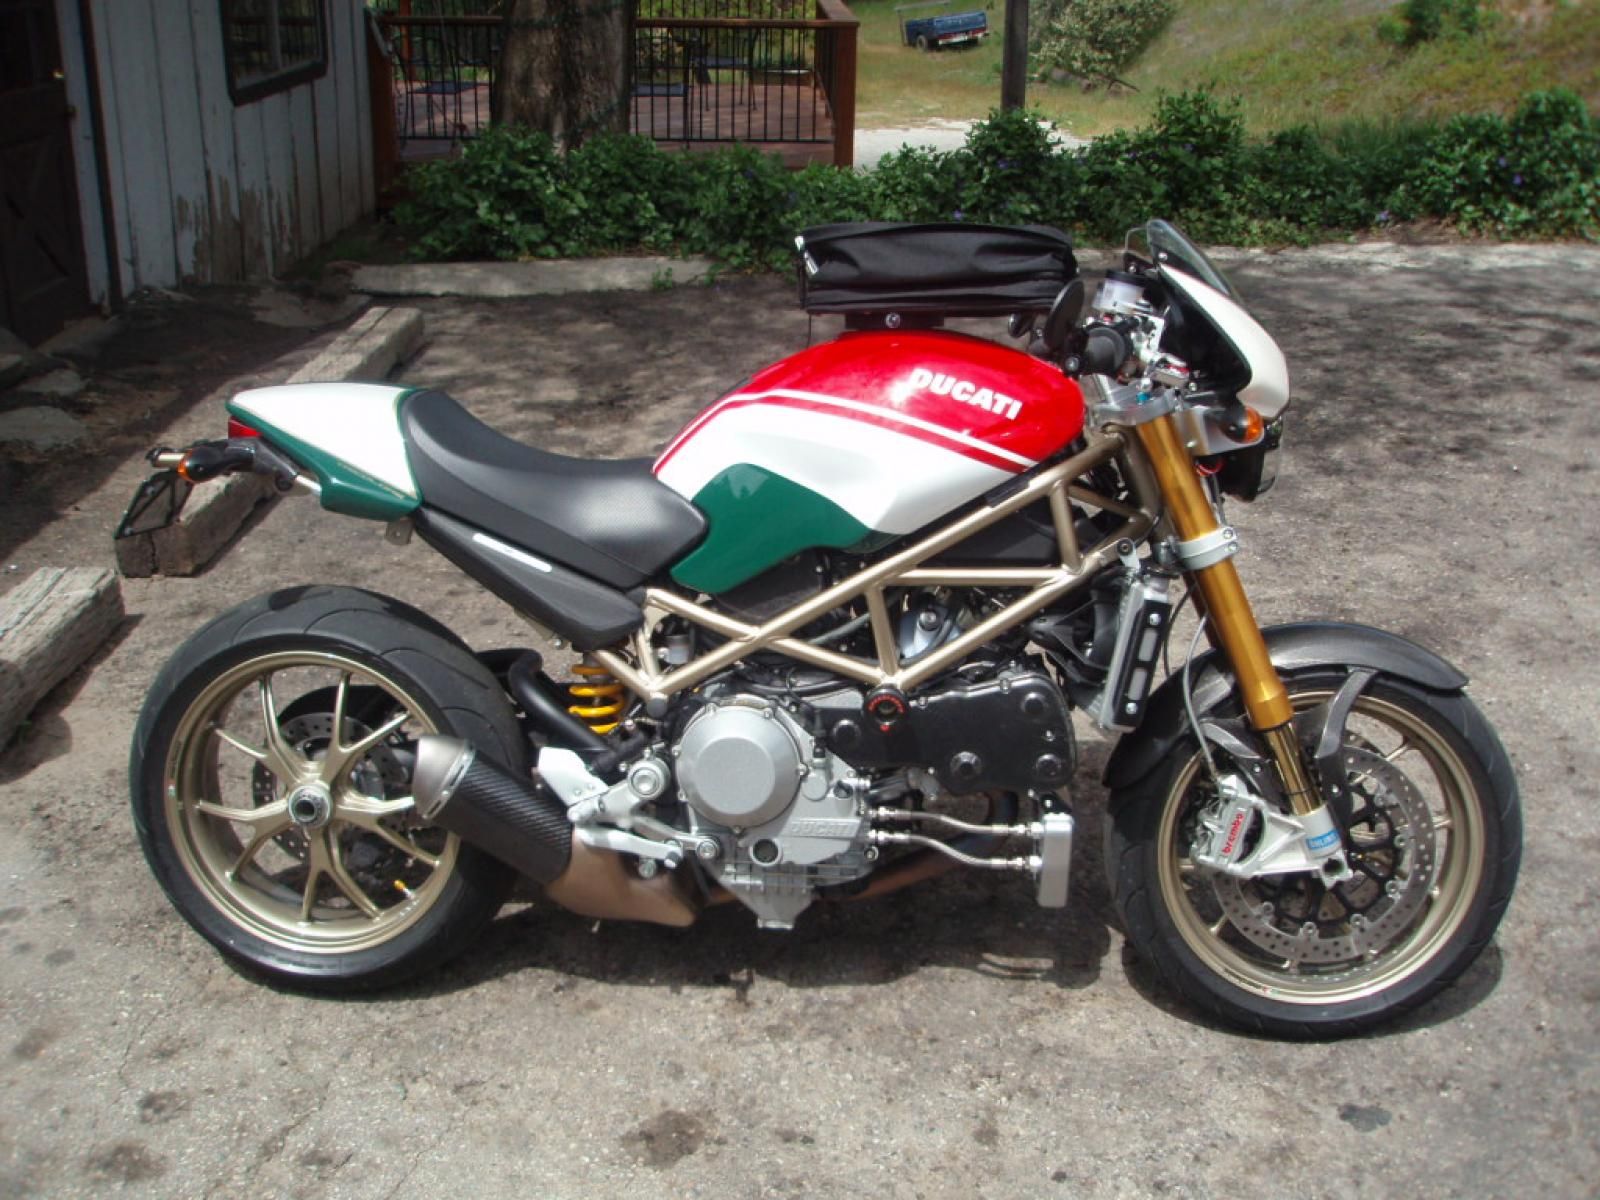 ducati ducati monster s4r s tricolore moto zombdrive com. Black Bedroom Furniture Sets. Home Design Ideas